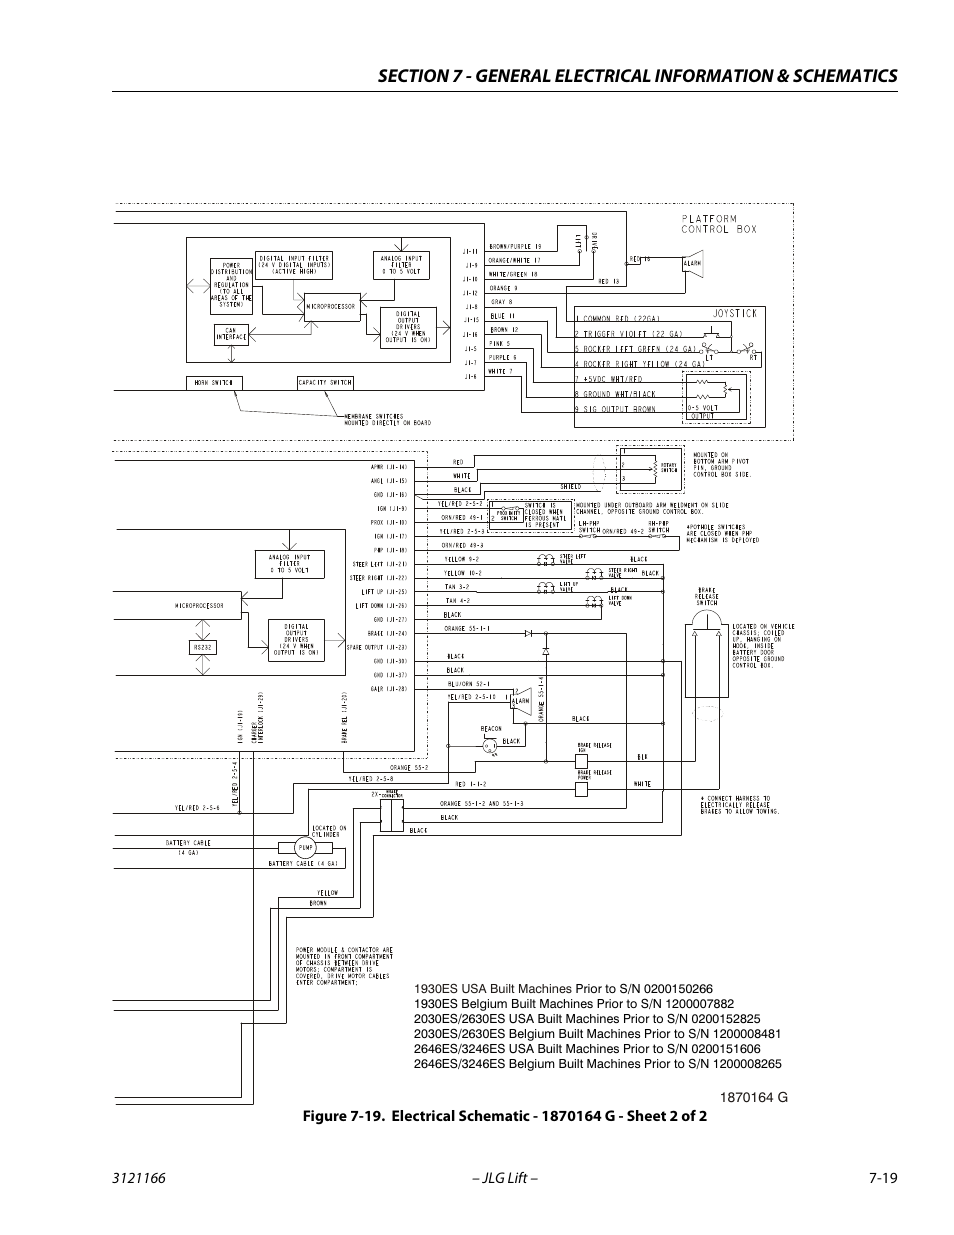 electrical schematic 1870164g sheet 2 of 2 jlg 3246es service rh manualsdir  com